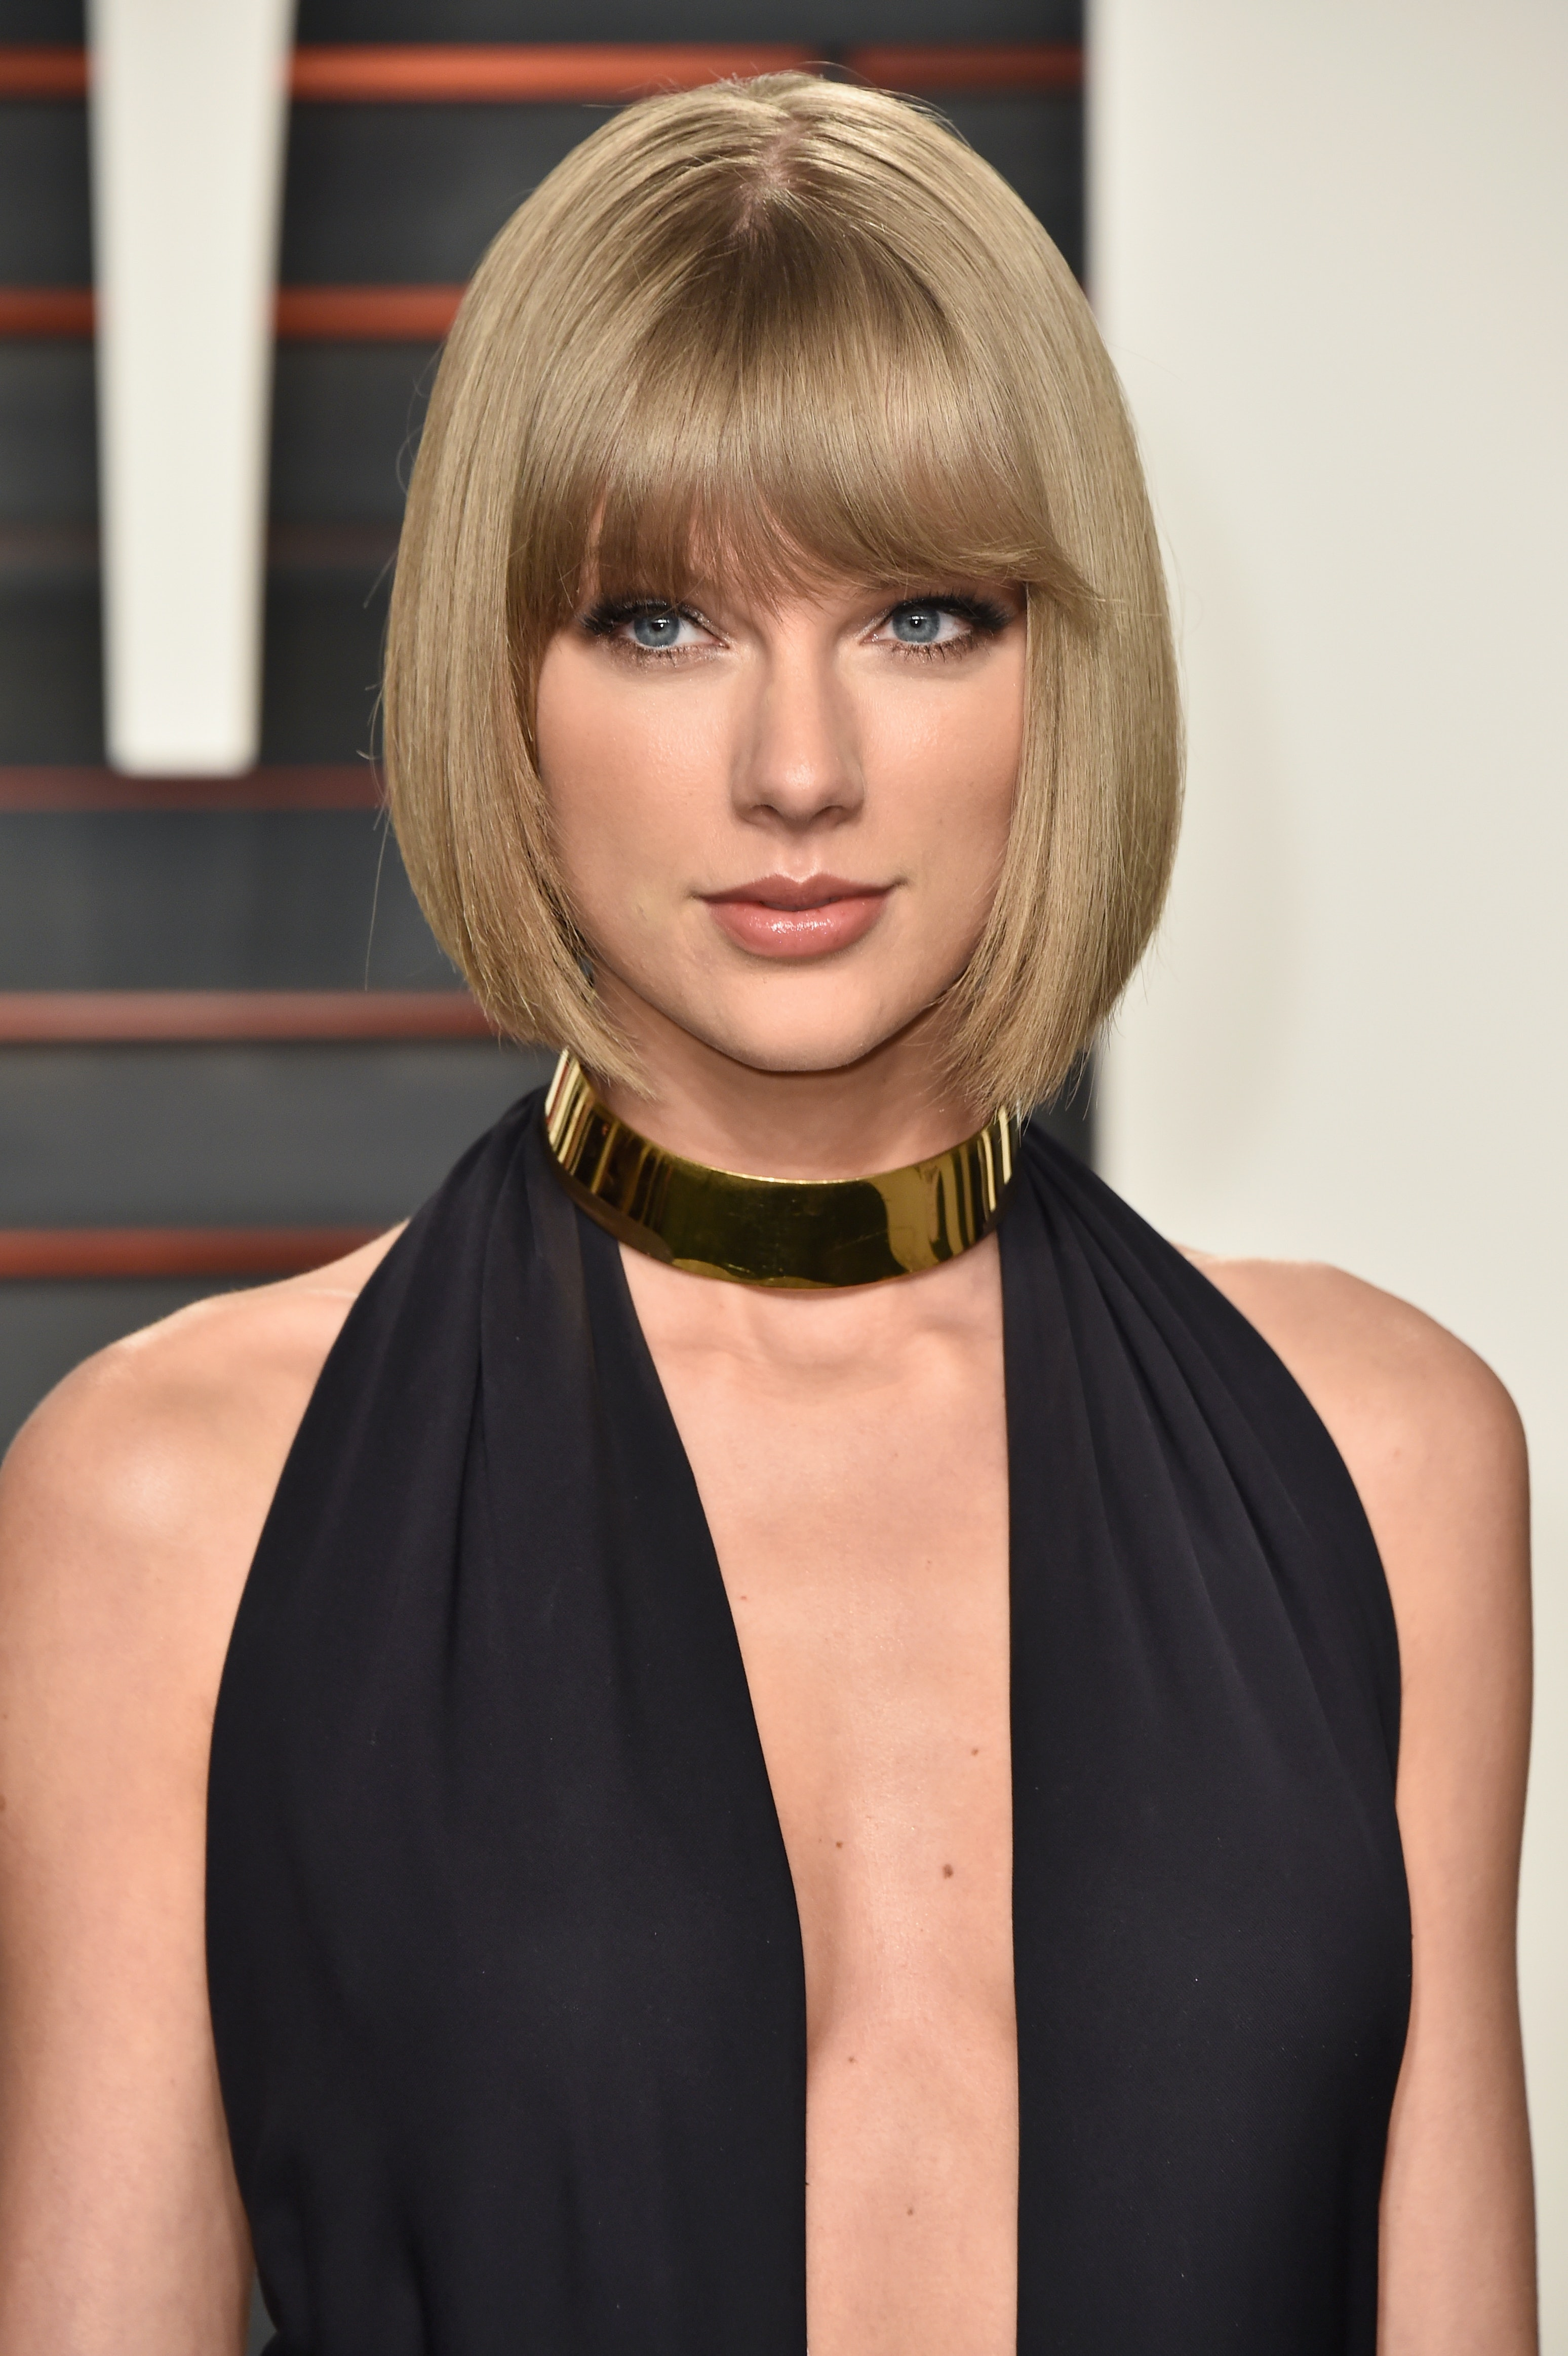 Vma Taylor Swift Shut Out Of Nominations